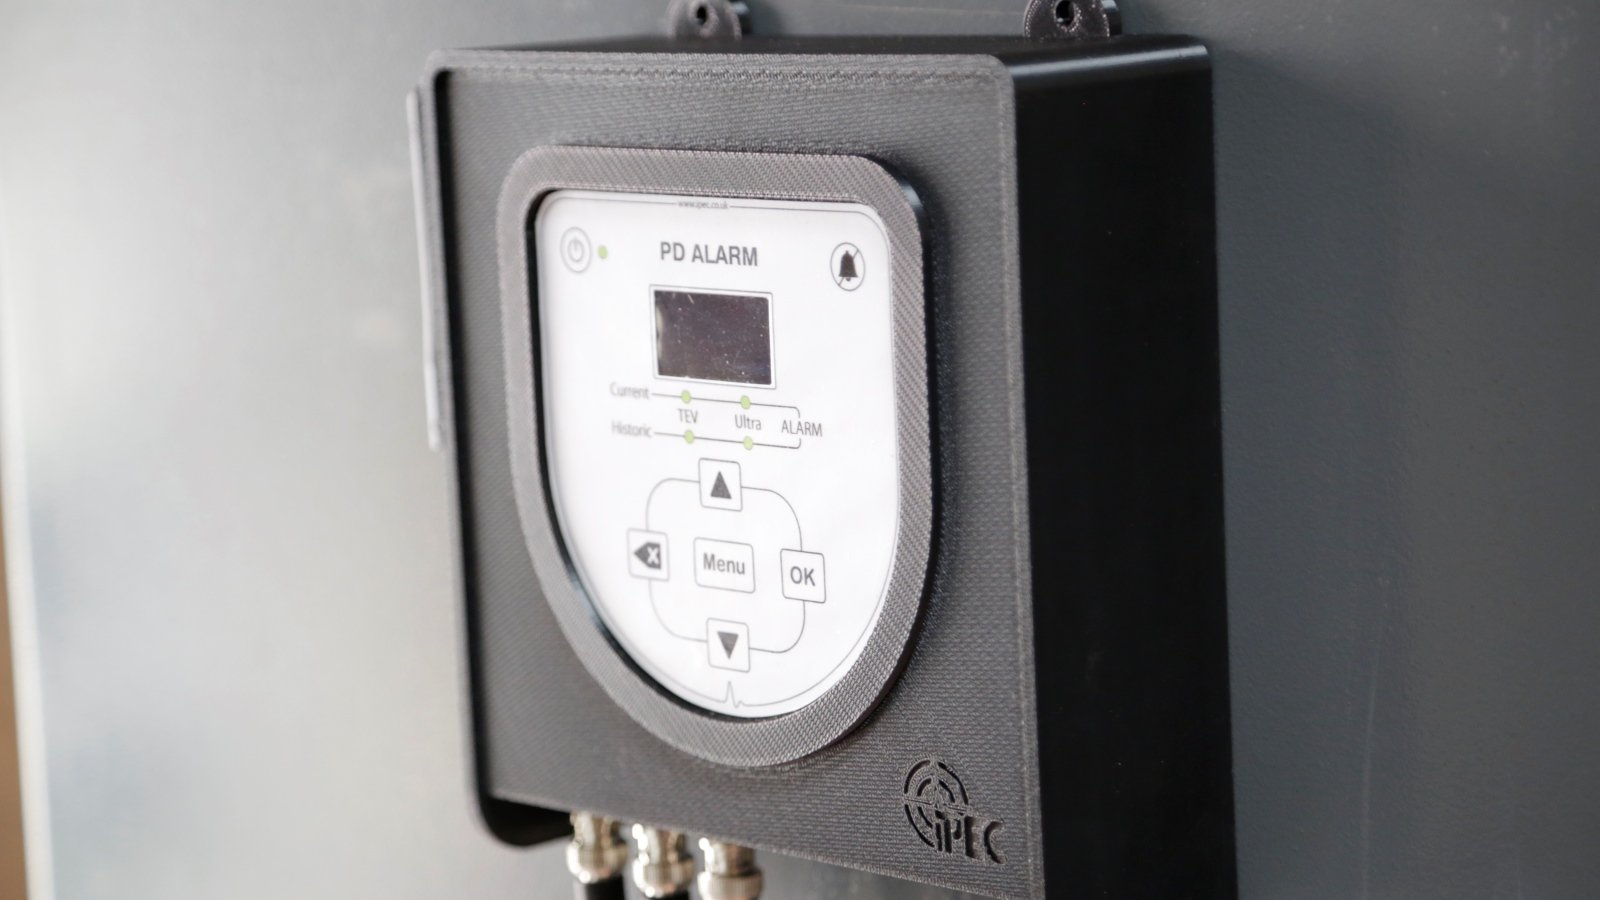 PD alarm ipec ltd